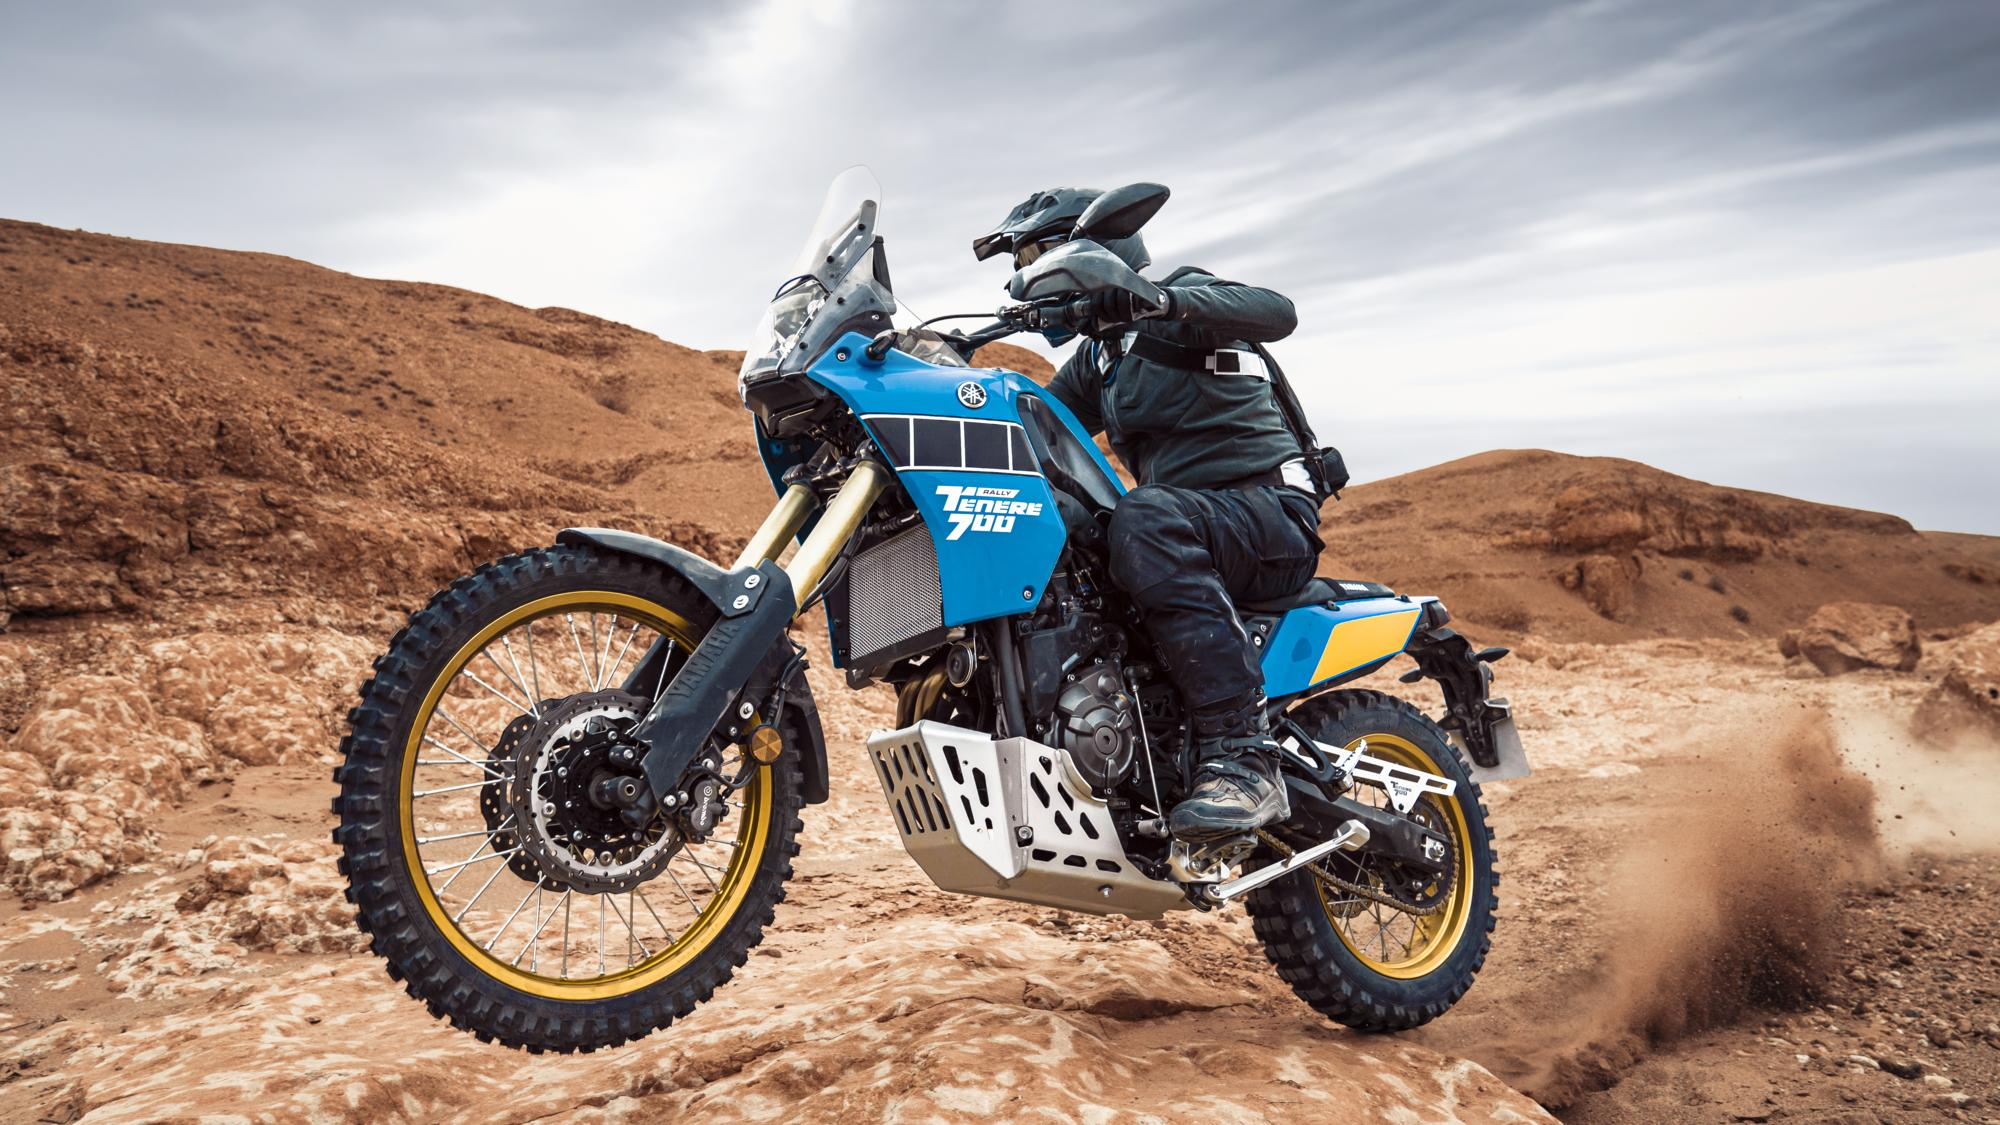 Ténéré 700 Rally Edition